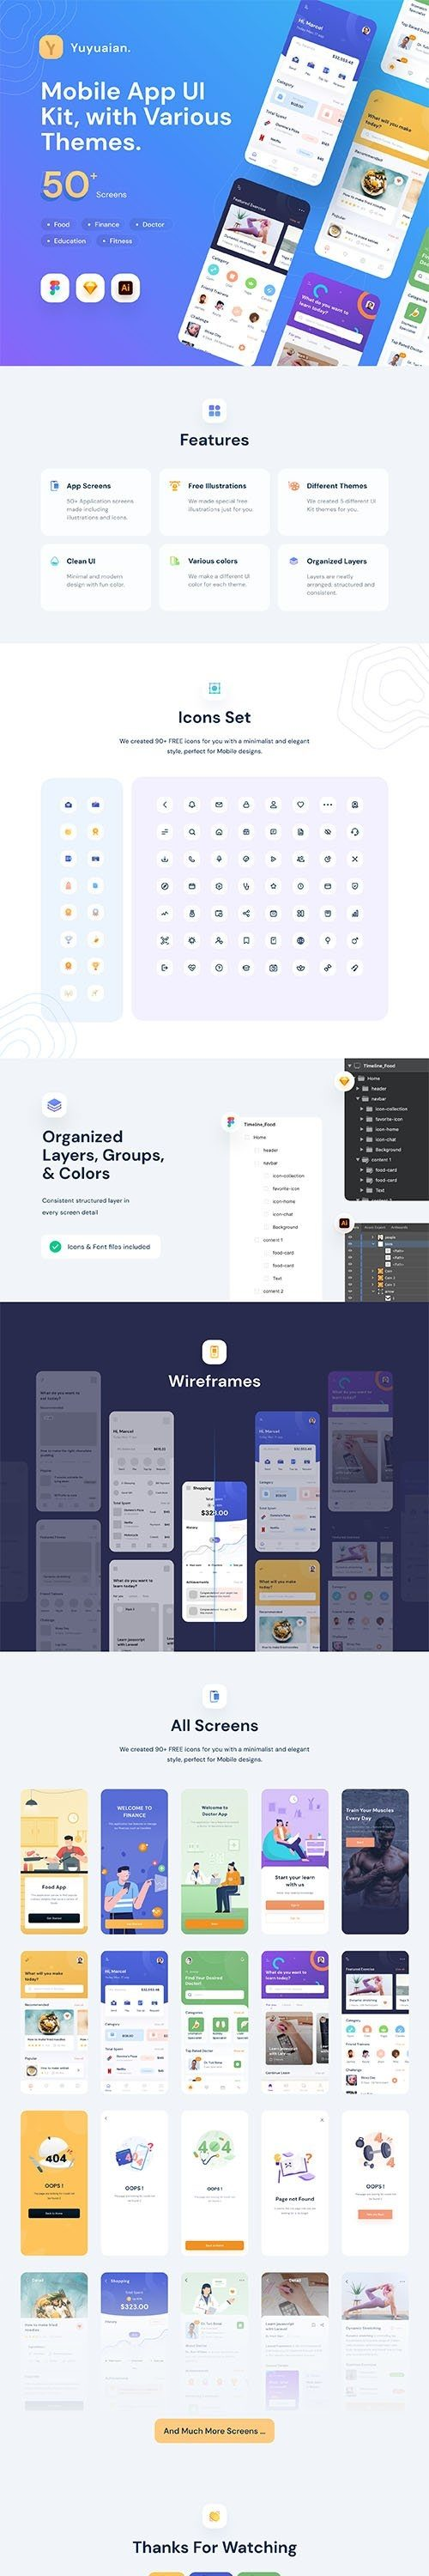 Yuyuaian Mobile UI Kit